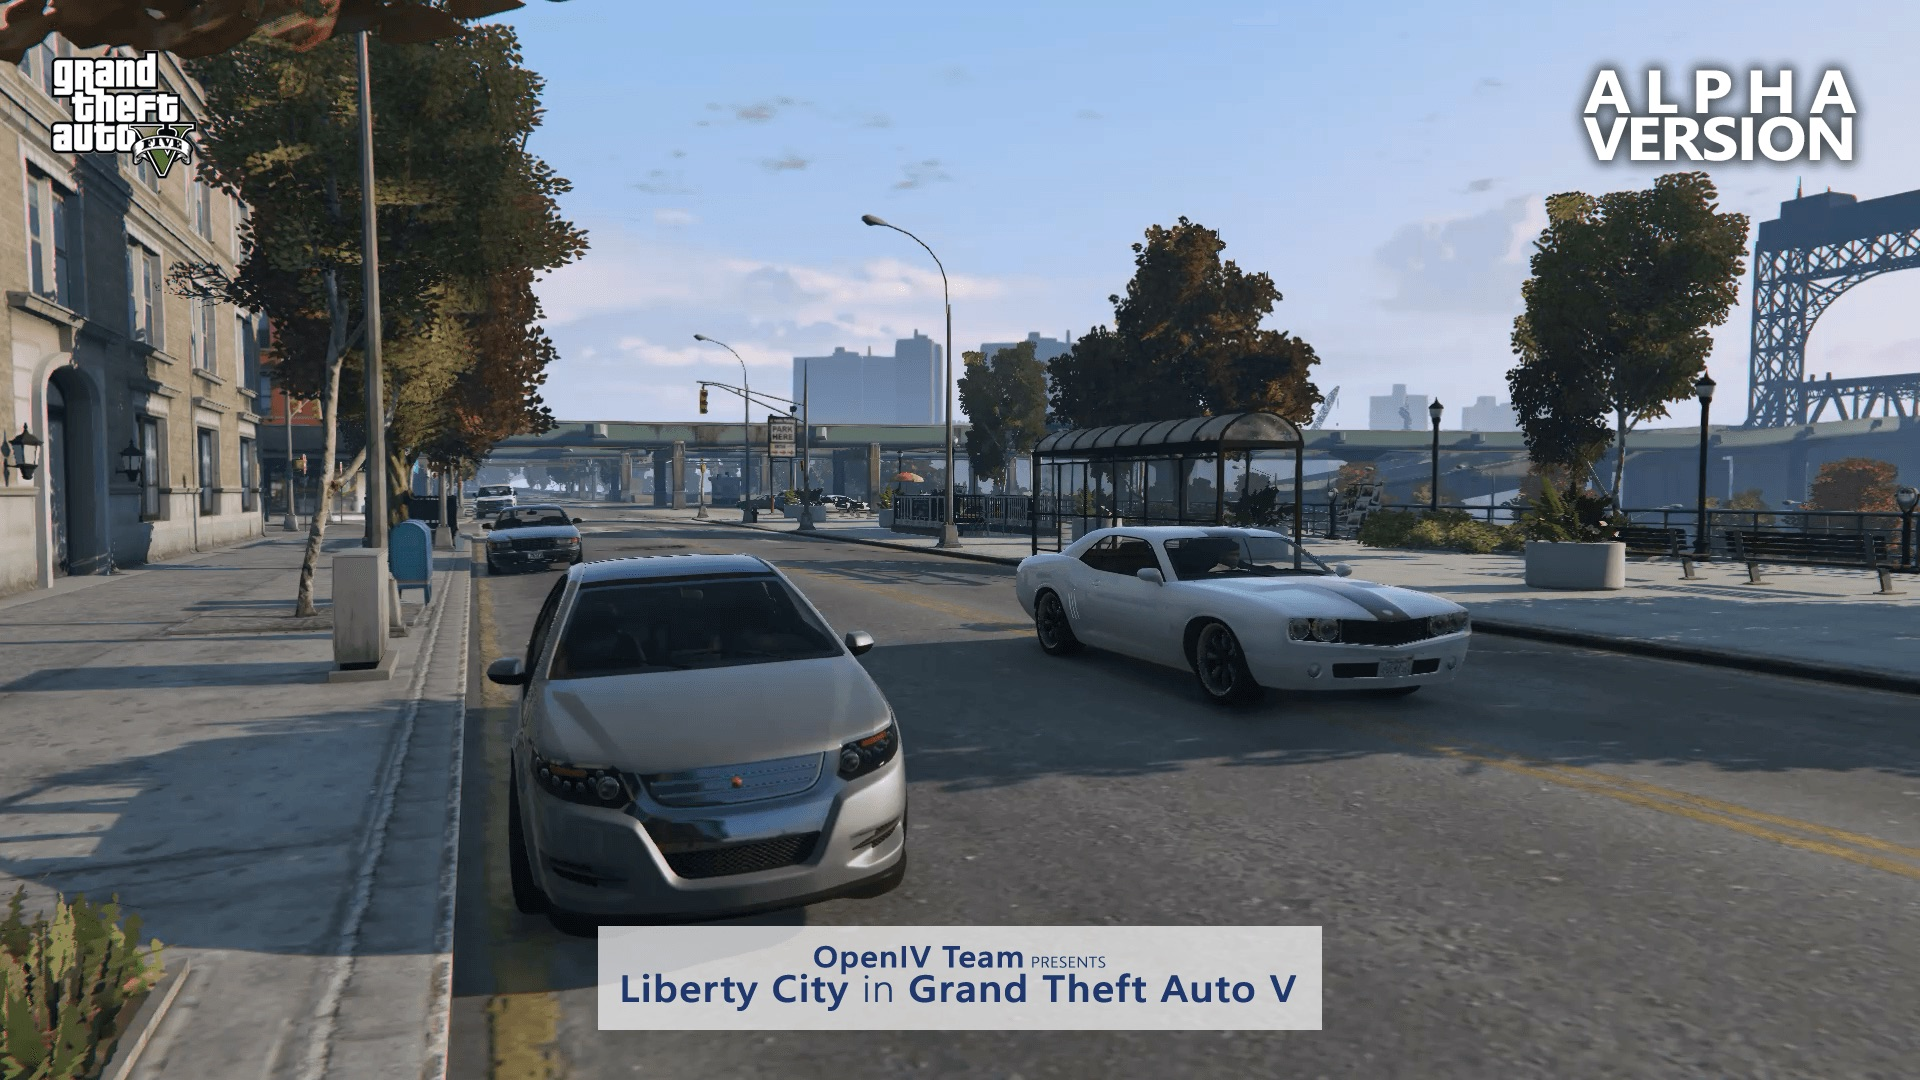 rue liberty city gta5 - GTA5france.com